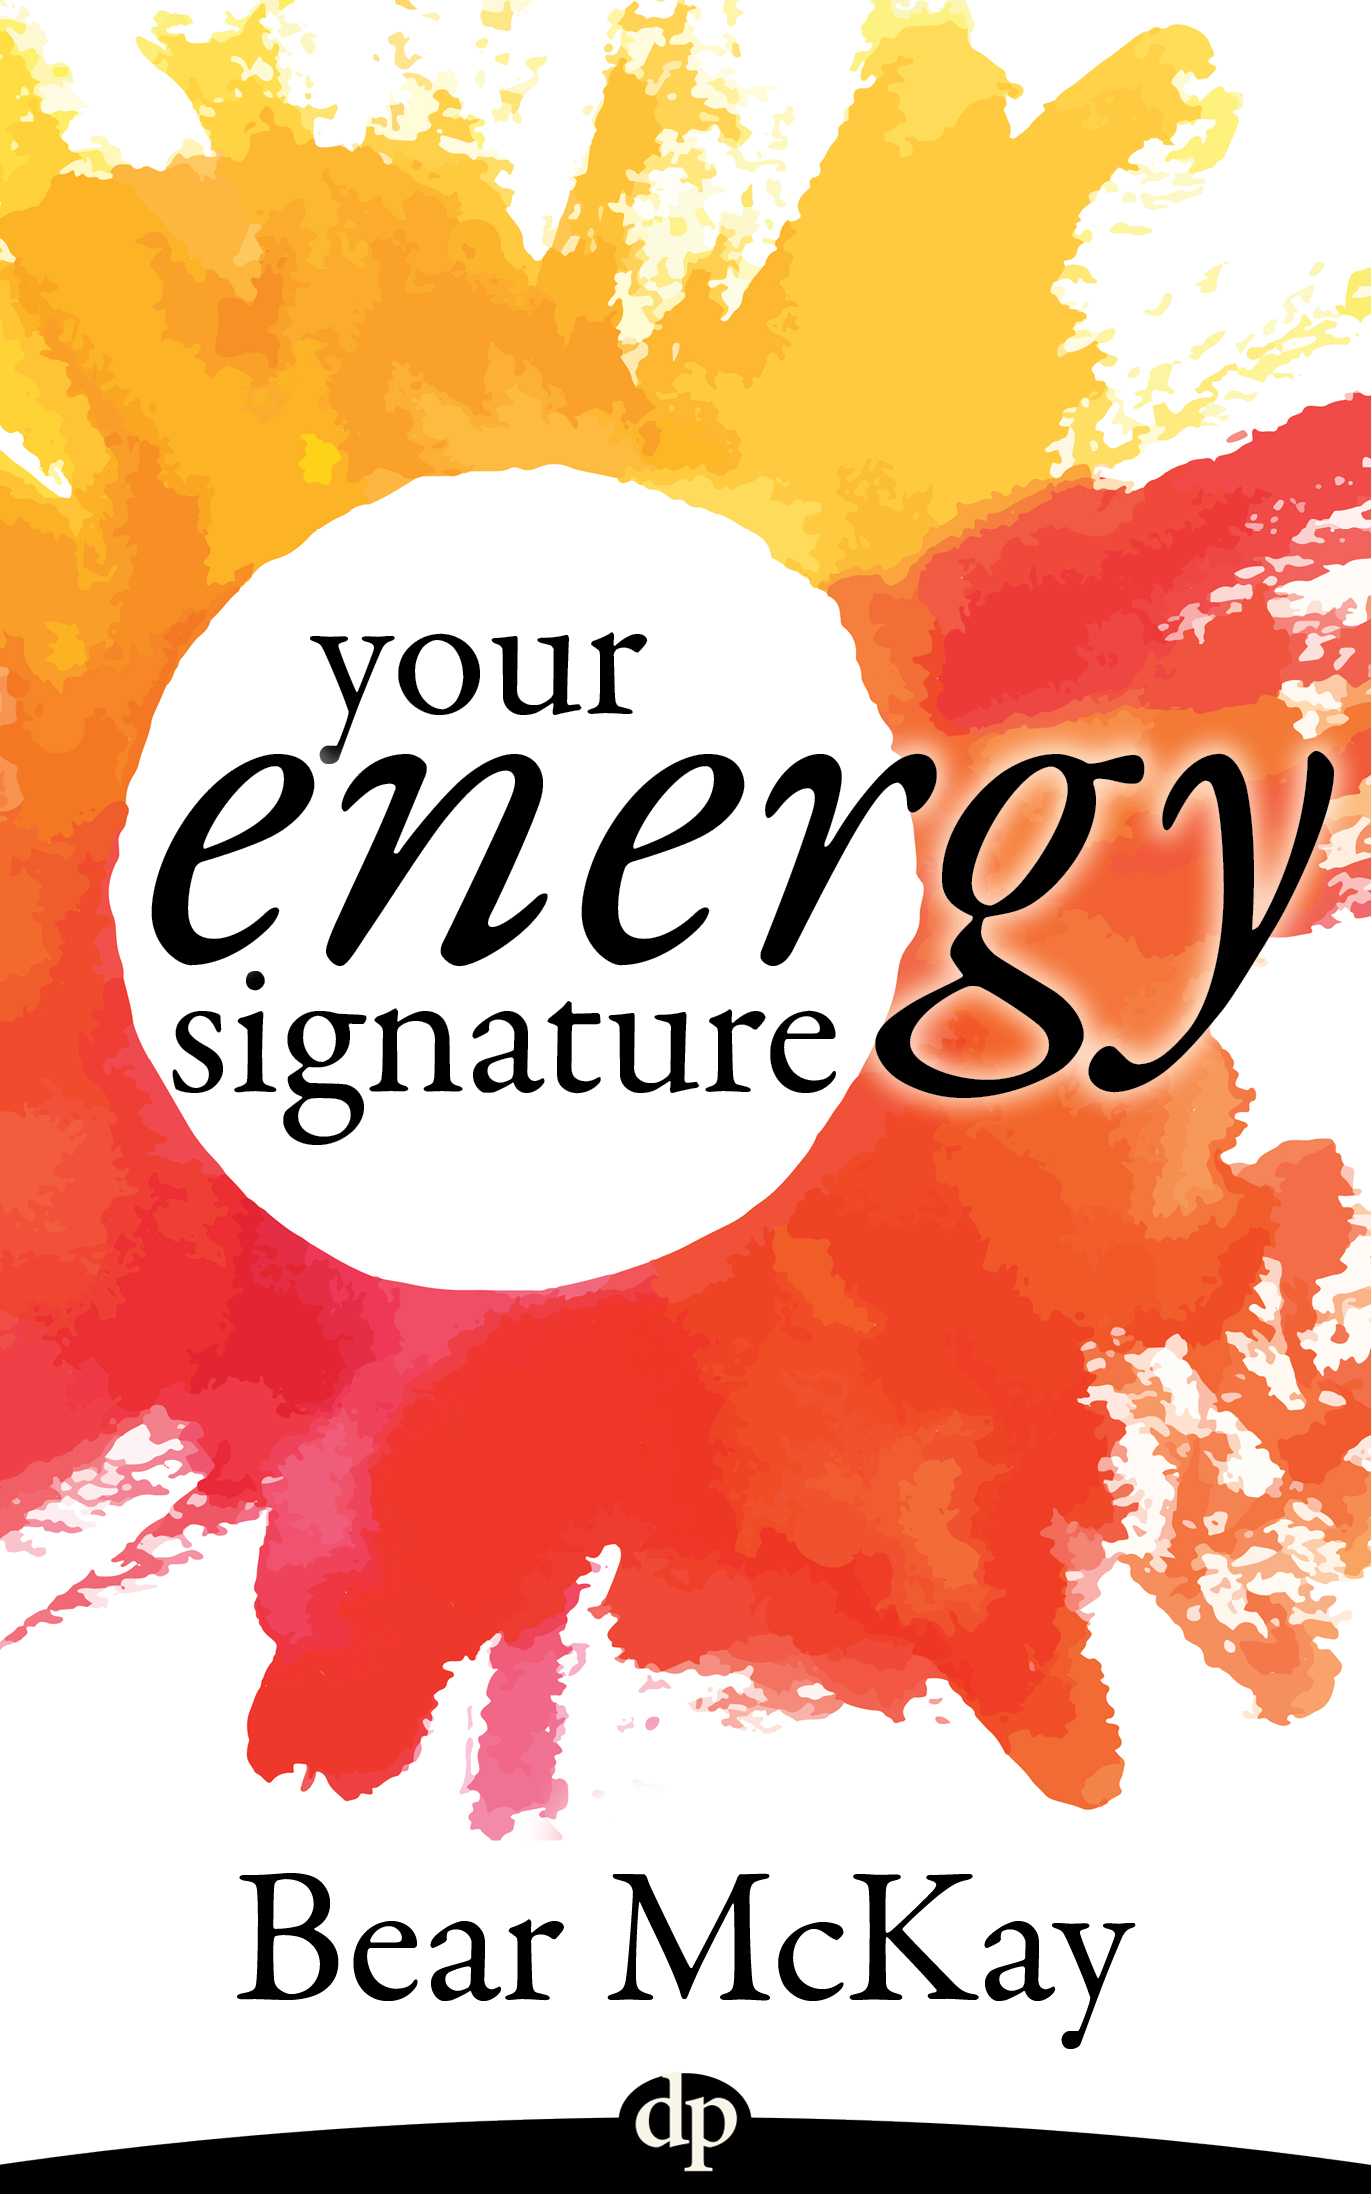 McKay_YourEnergySignature_EBK_FINAL.jpg